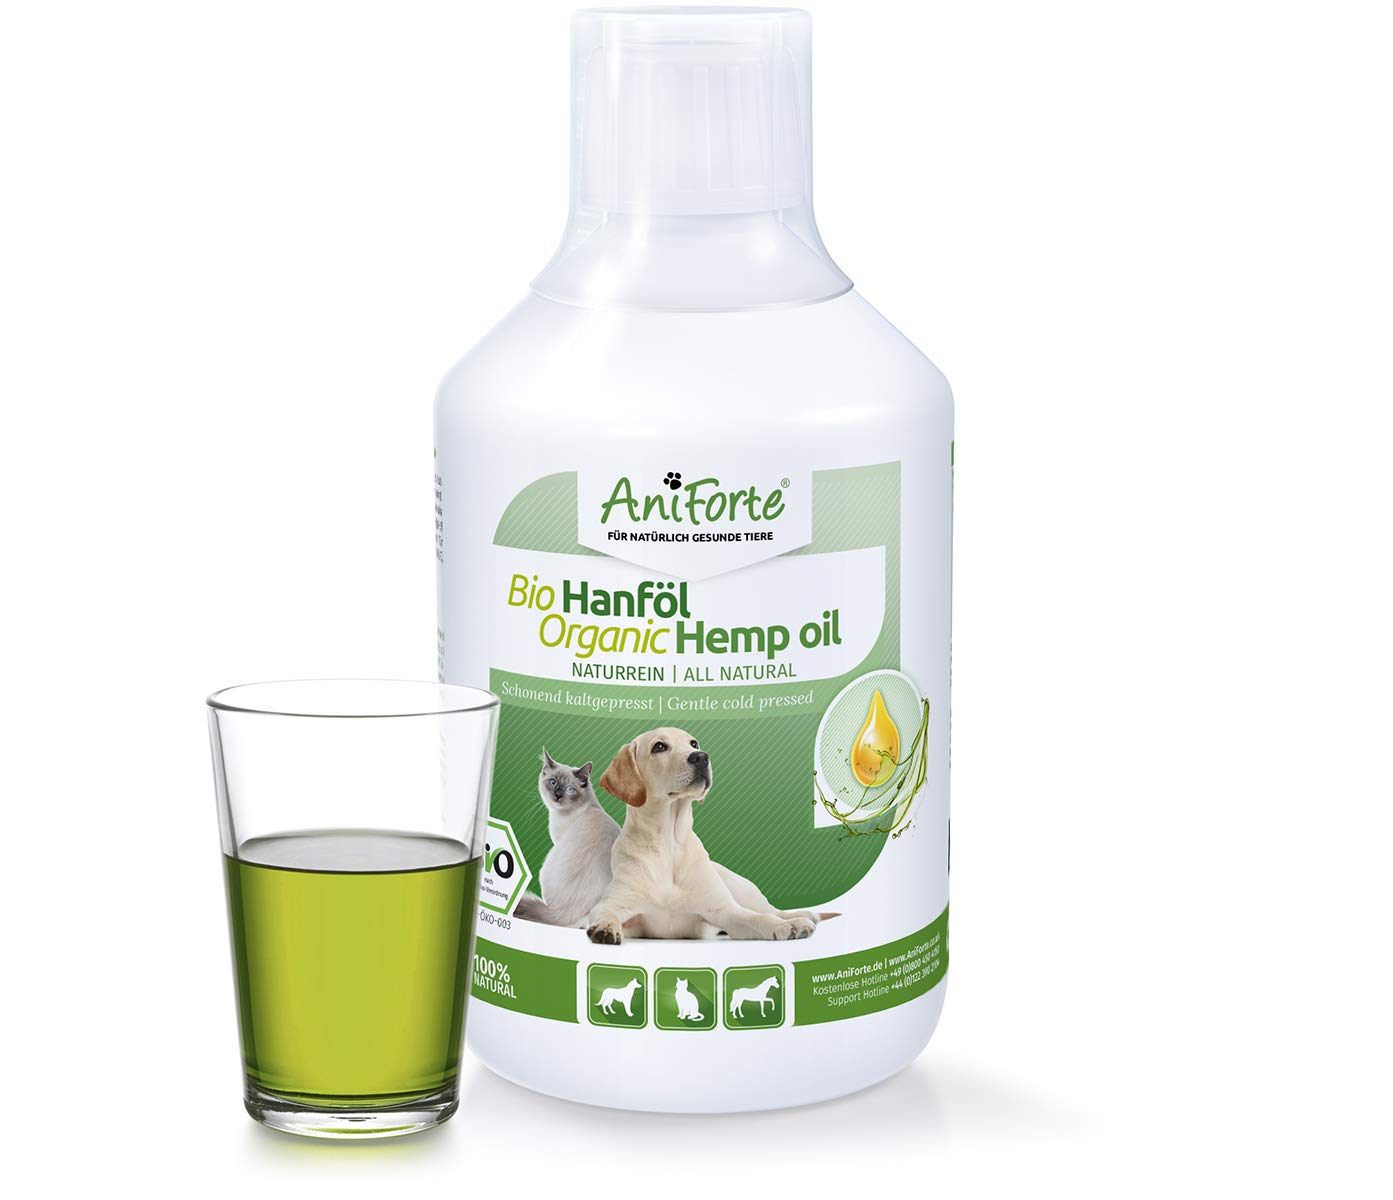 AniForte Organic Hemp Oil for Dogs & Cats 500ml – Joint Supplement for Pets, Supports Coat, Skin, Joints, Cold Pressed Hemp Seed Oil, Rich in Natural Omega 3 and 6, Feed Supplement, Barf Additive